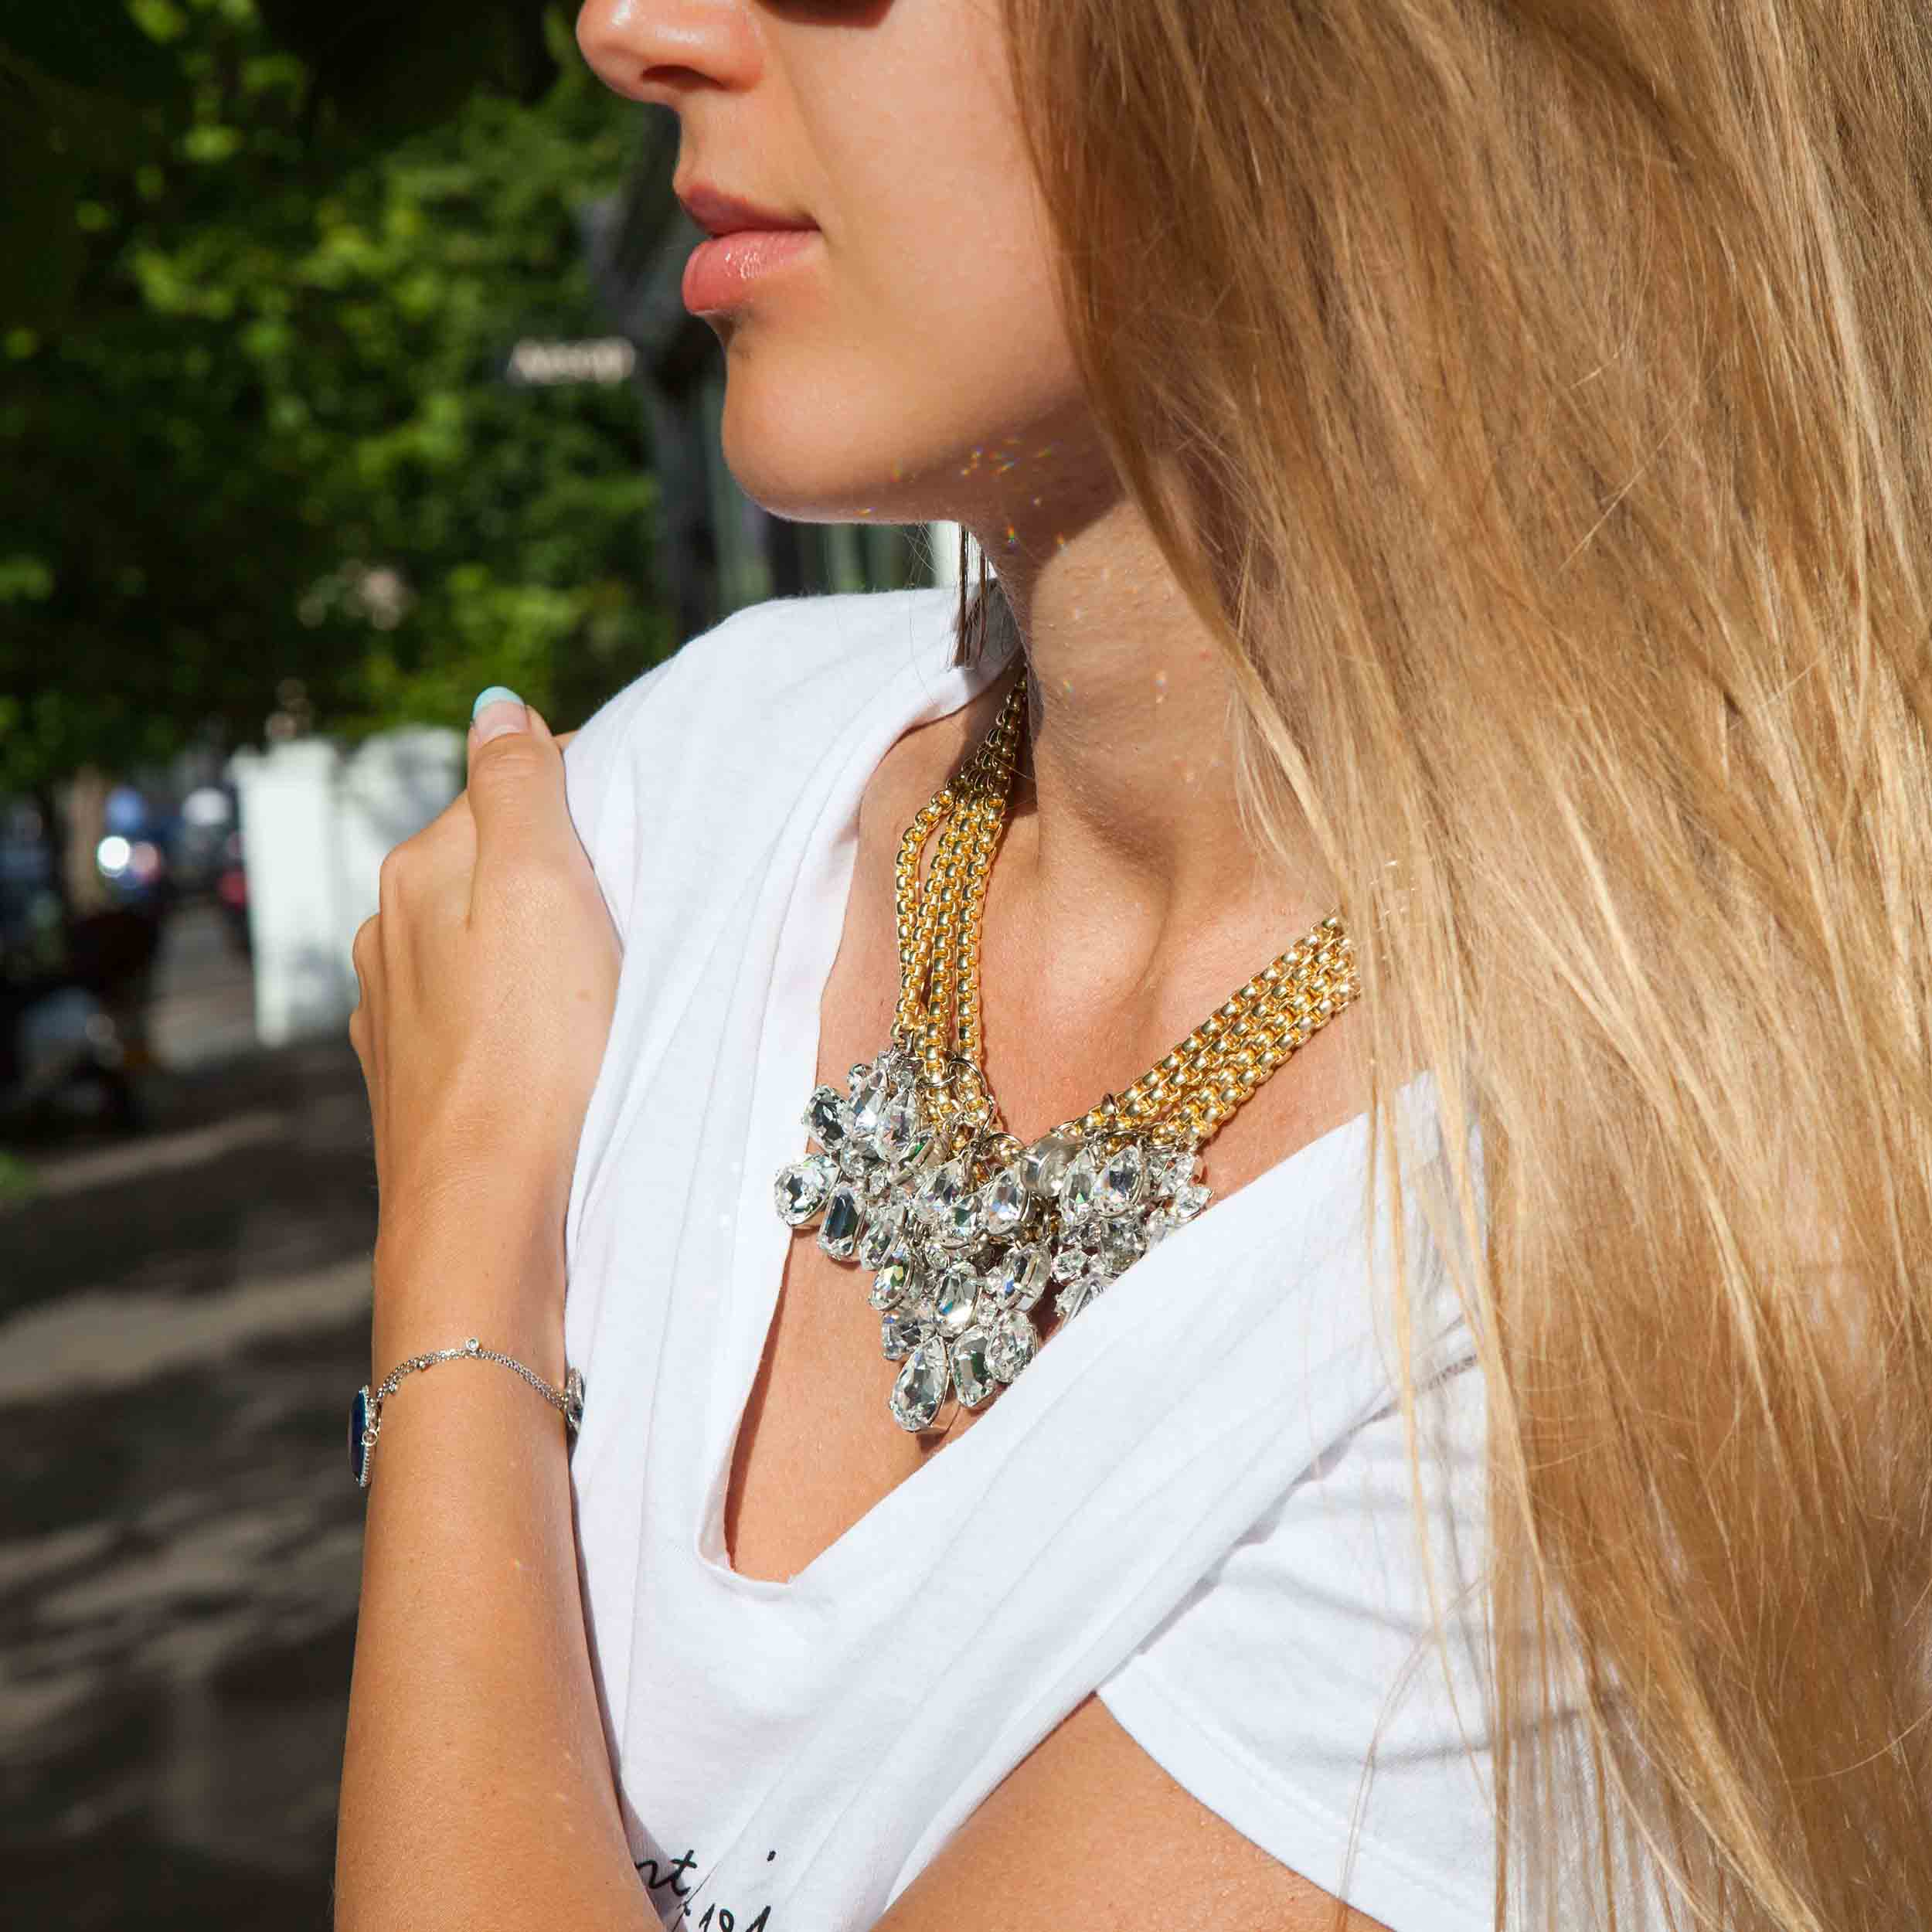 MEWS LONDON NECKLACE REVIEW